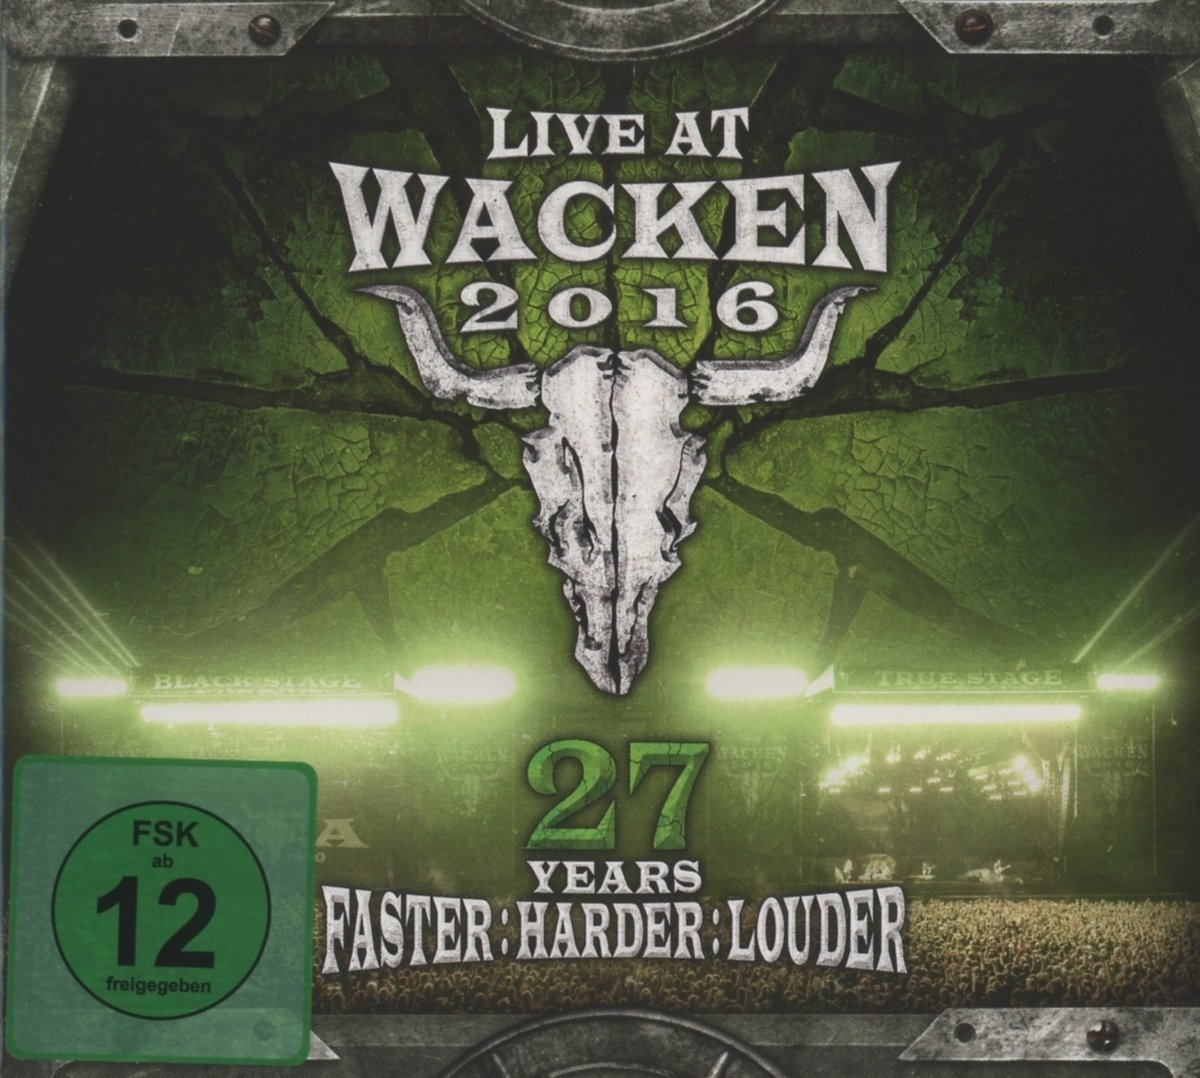 VA - Live At Wacken 2016 27 Years Faster Harder Louder - 2CD - FLAC - 2017 - NBFLAC Download